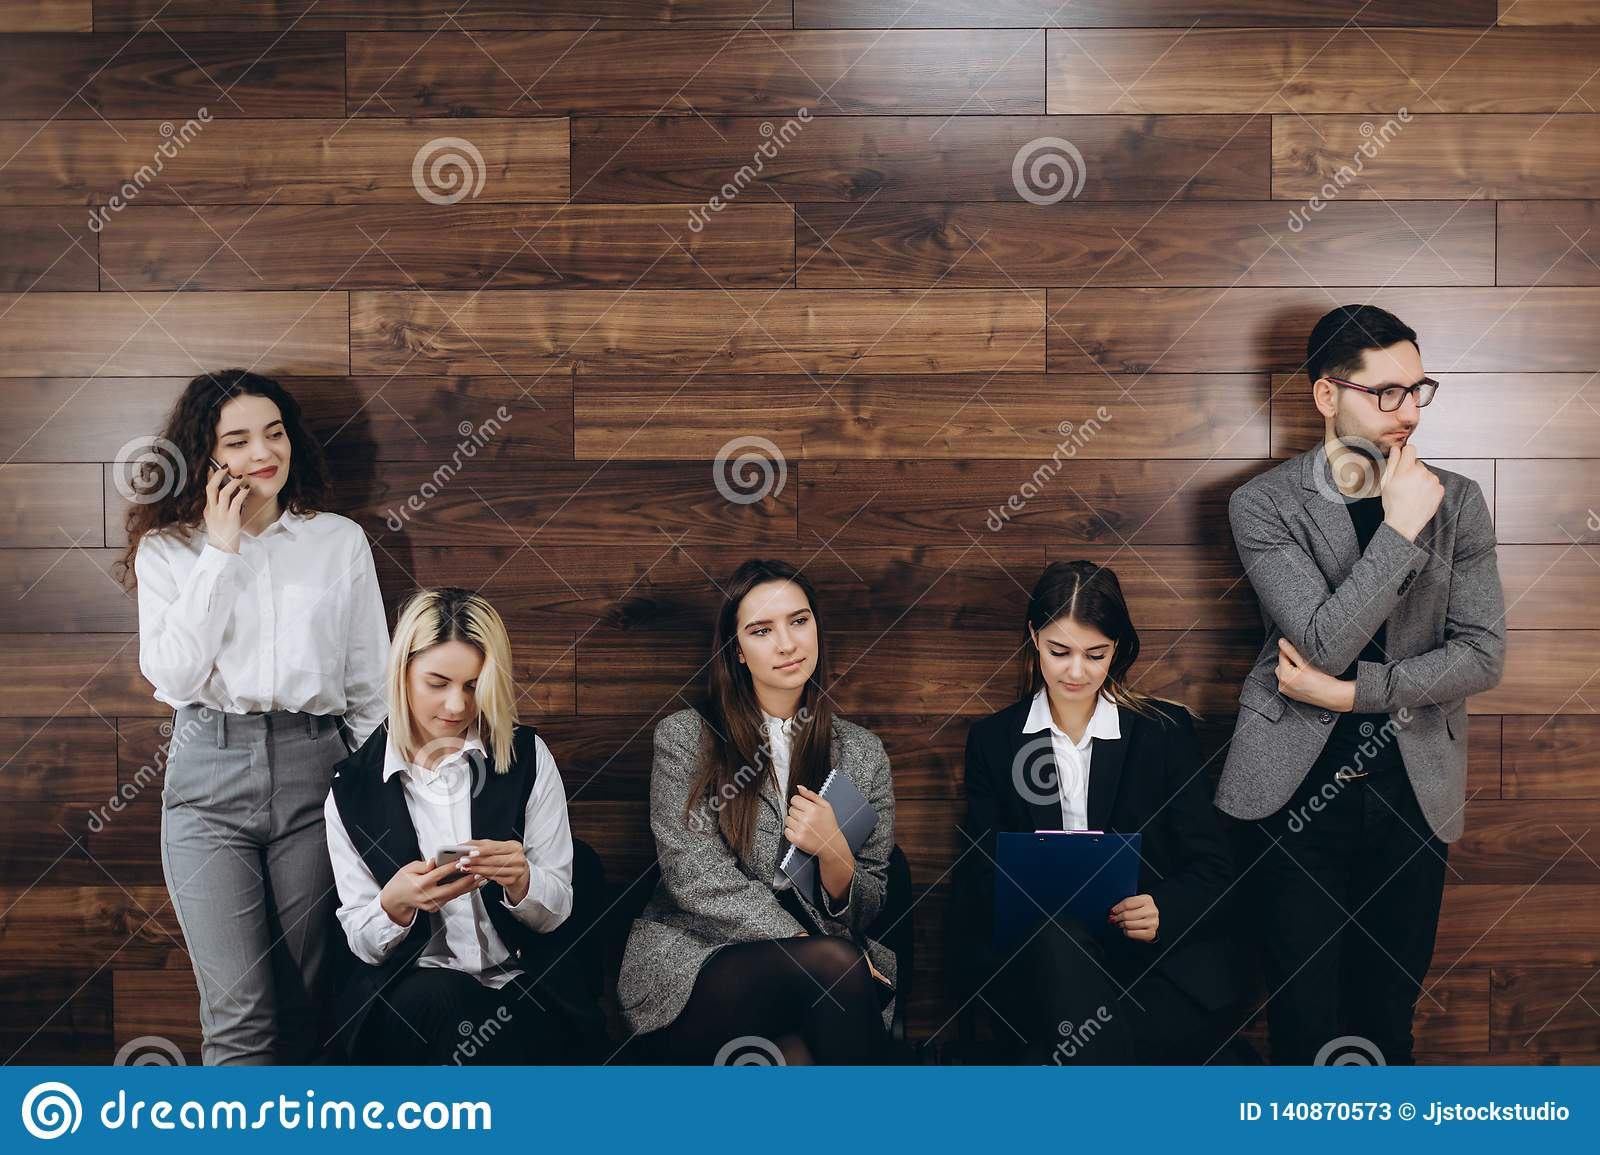 Multi-ethnic Millennial People Holding Phones And Resumes Preparing